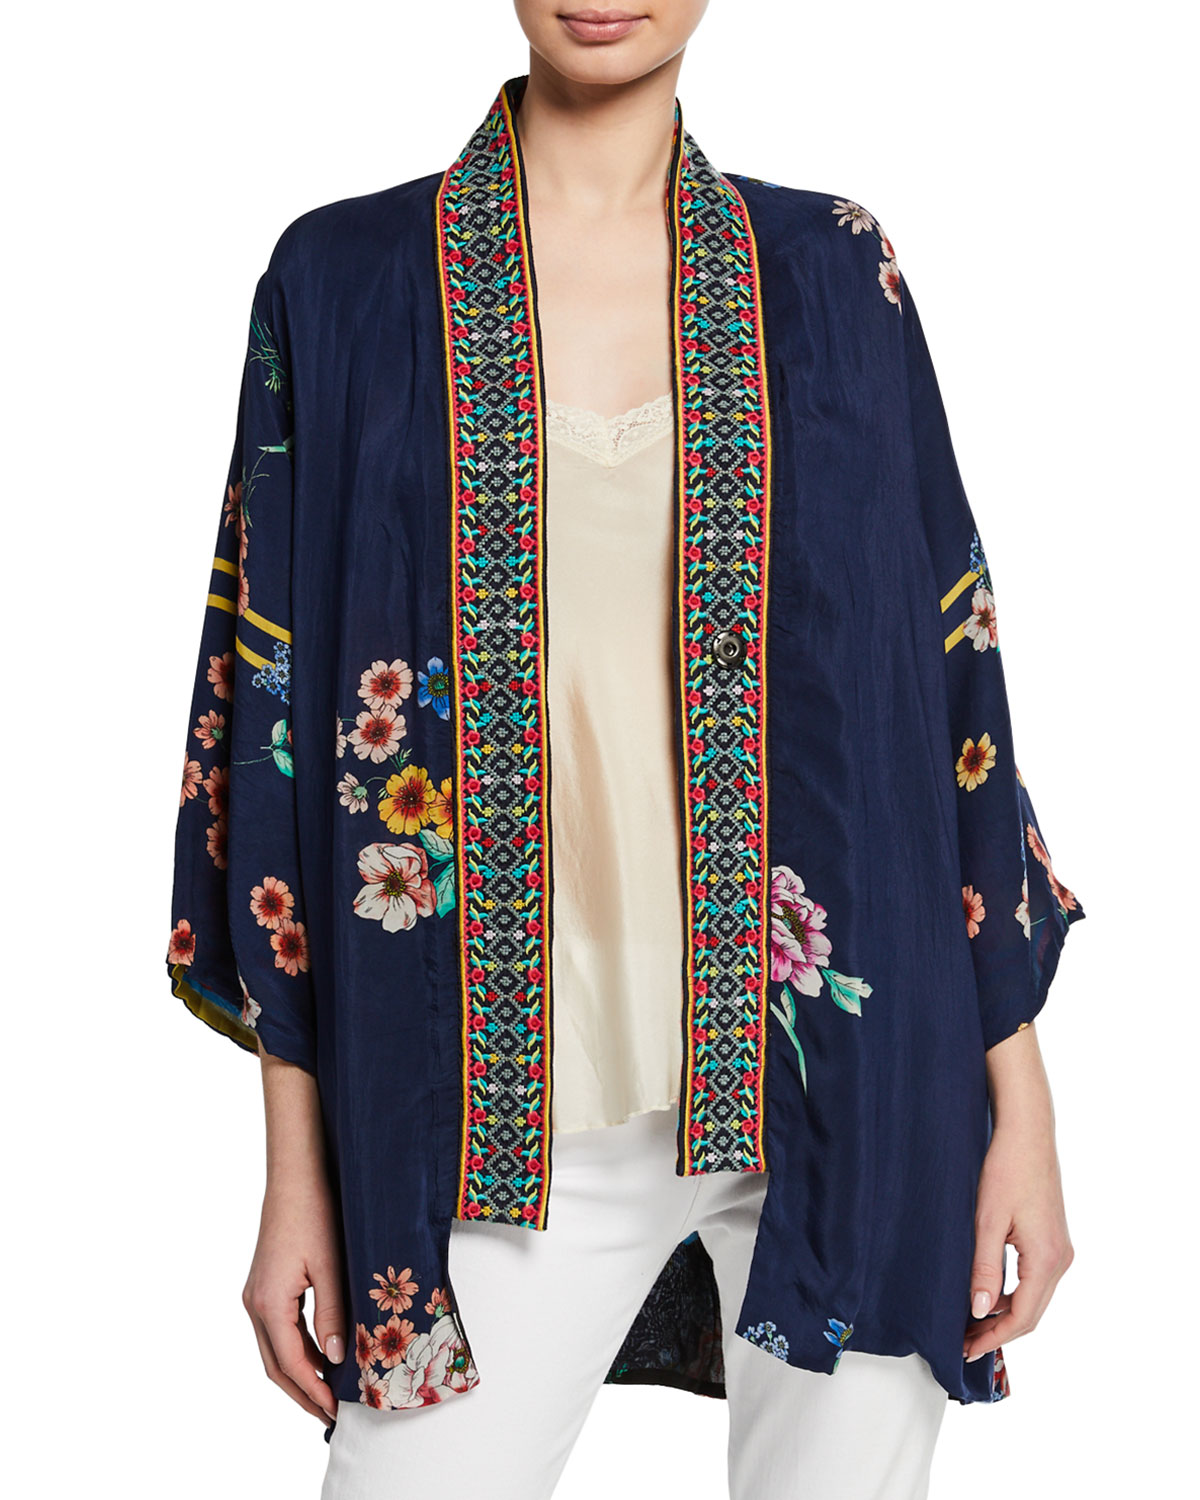 Johnny Was Tops PETITE MACI FLORAL GEORGETTE REVERSIBLE KIMONO W/ EMBROIDERED TRIM